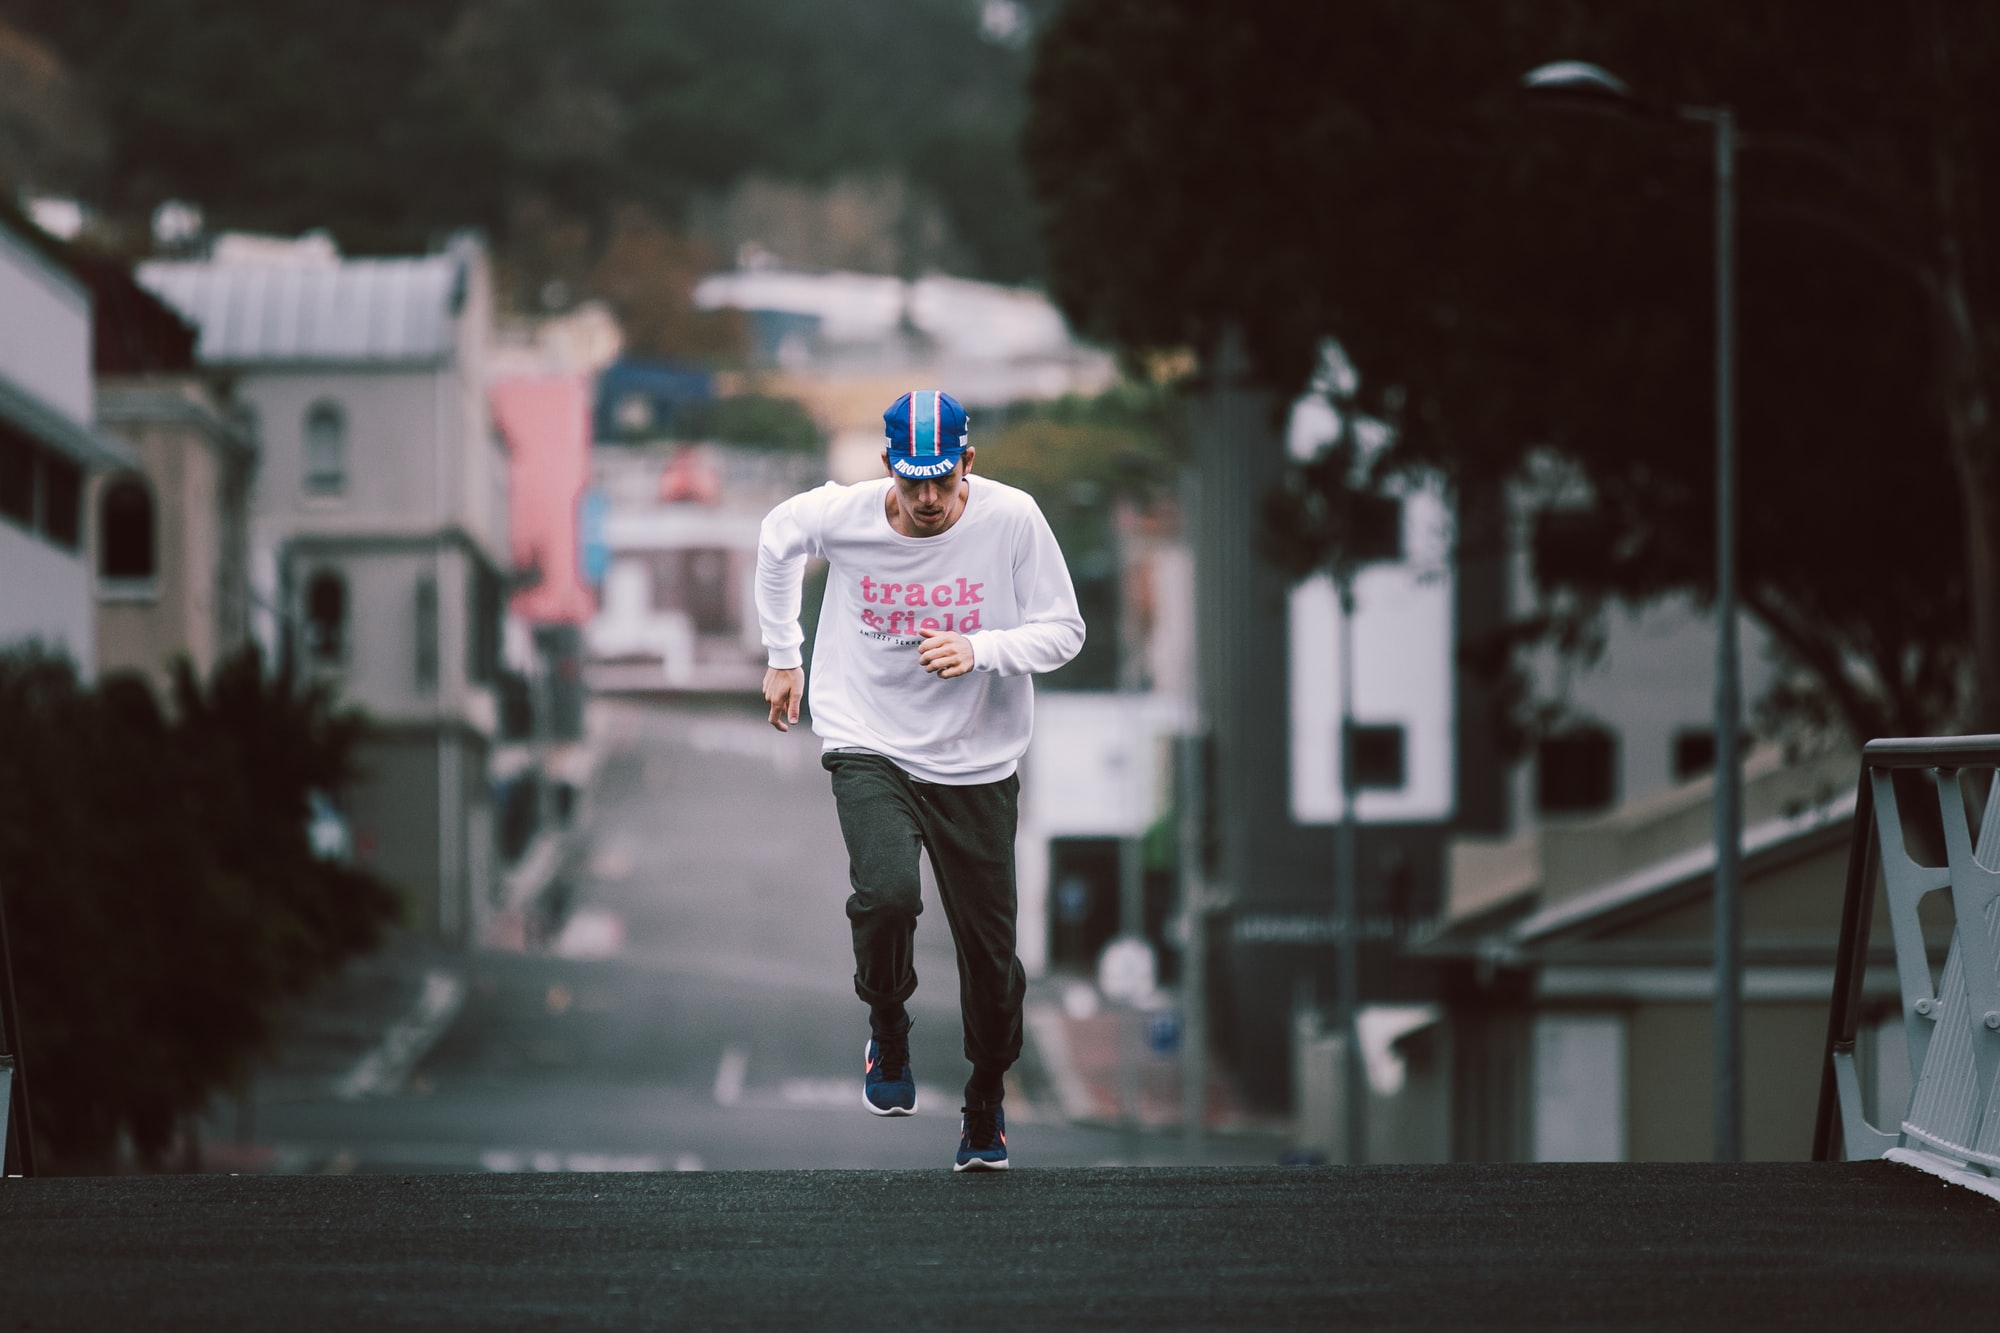 Runner in Cape Town wearing vintage running clothing.